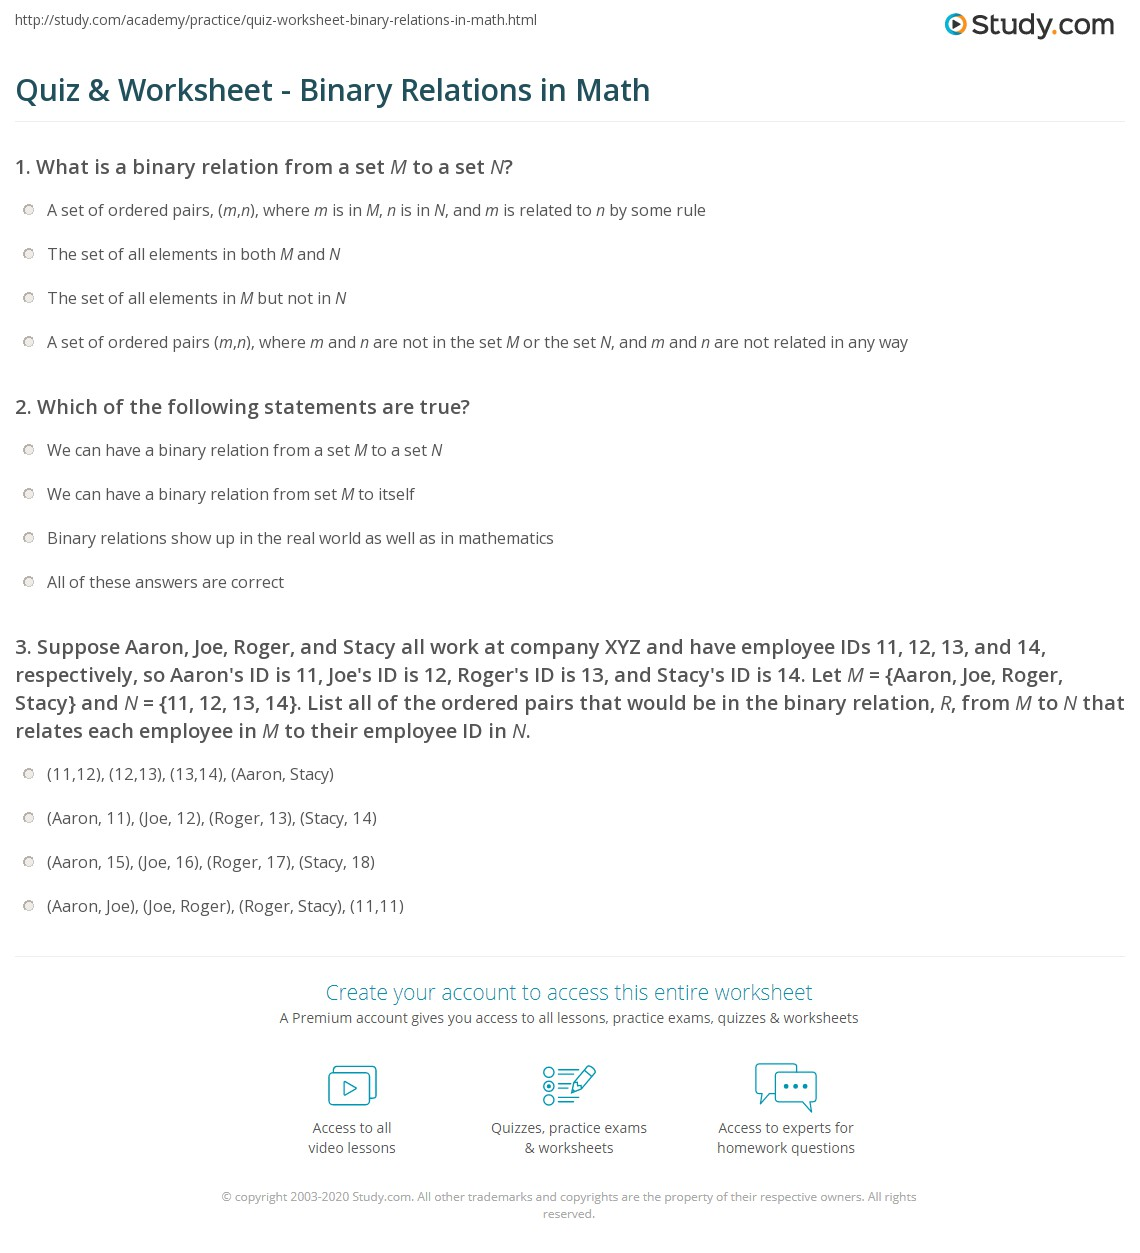 quiz & worksheet - binary relations in math | study